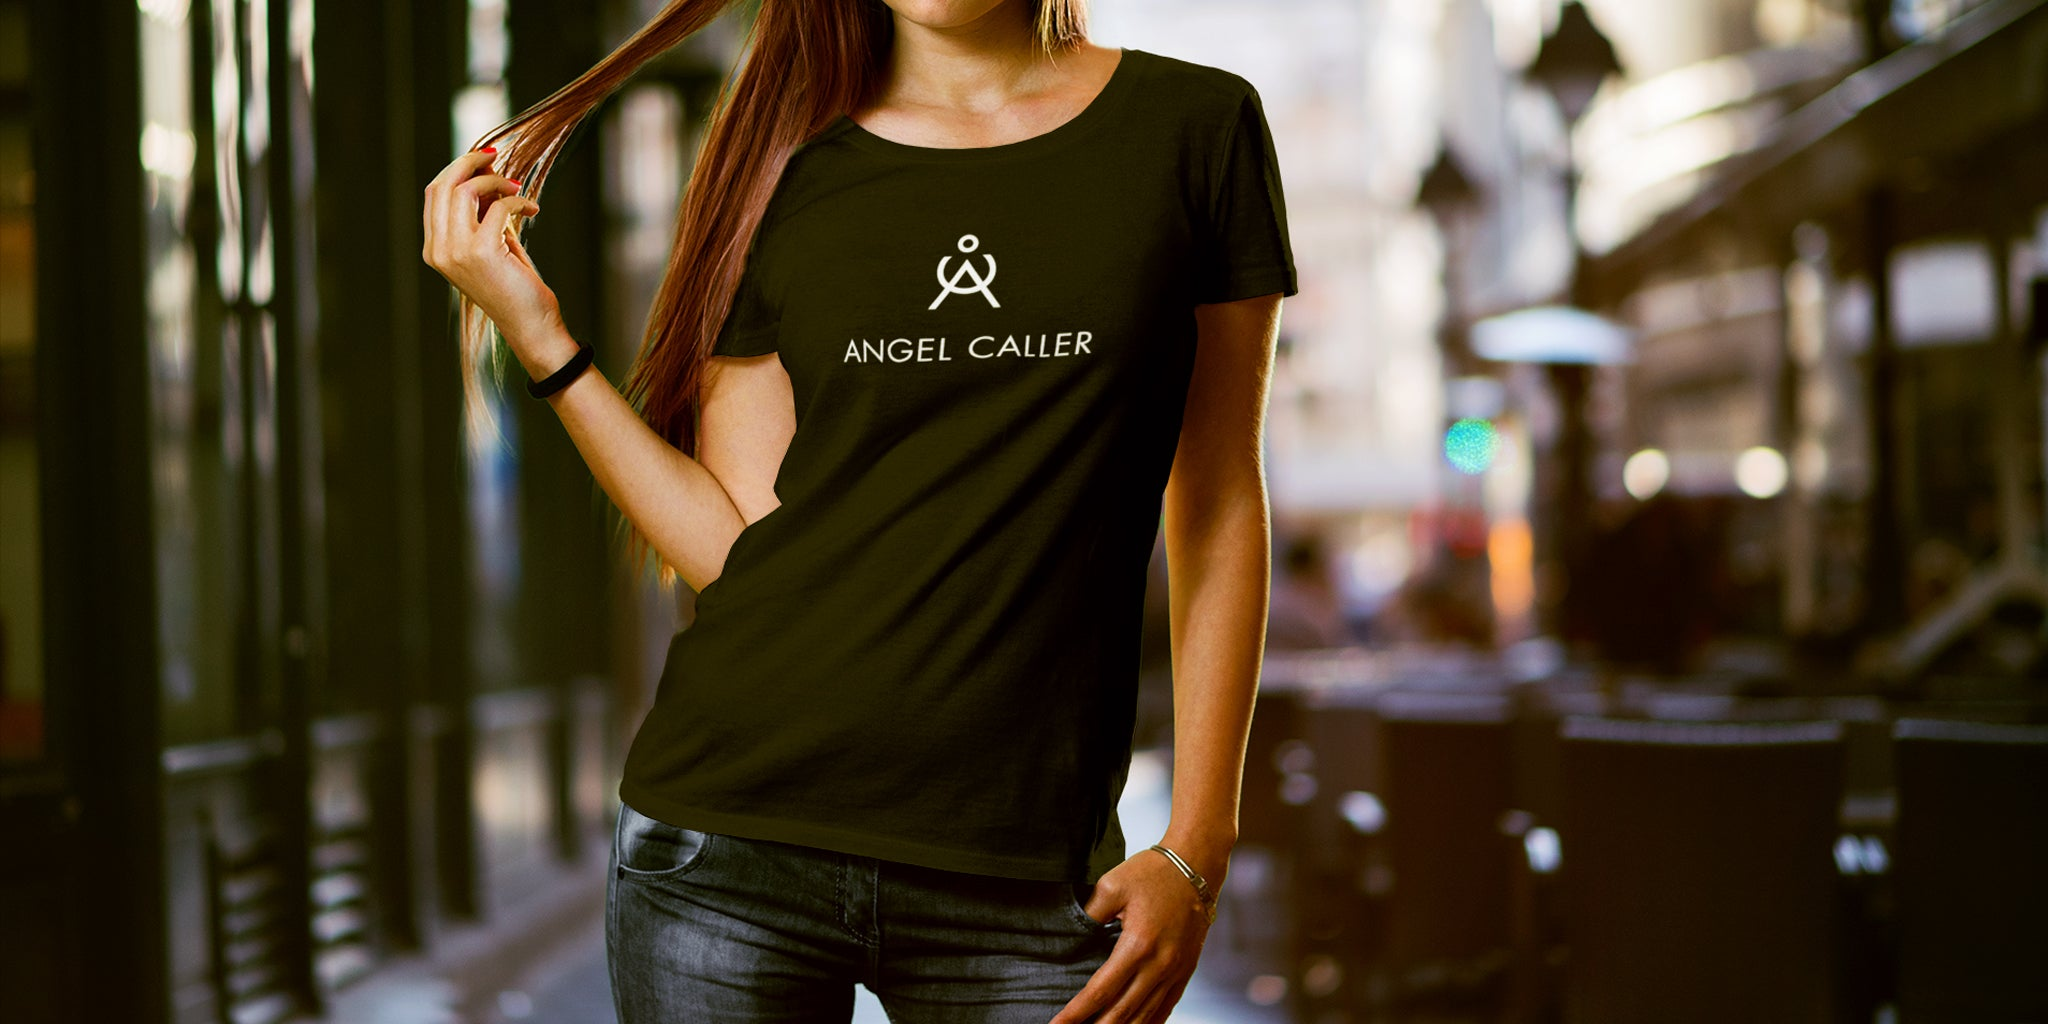 Angel Caller Women's Wear